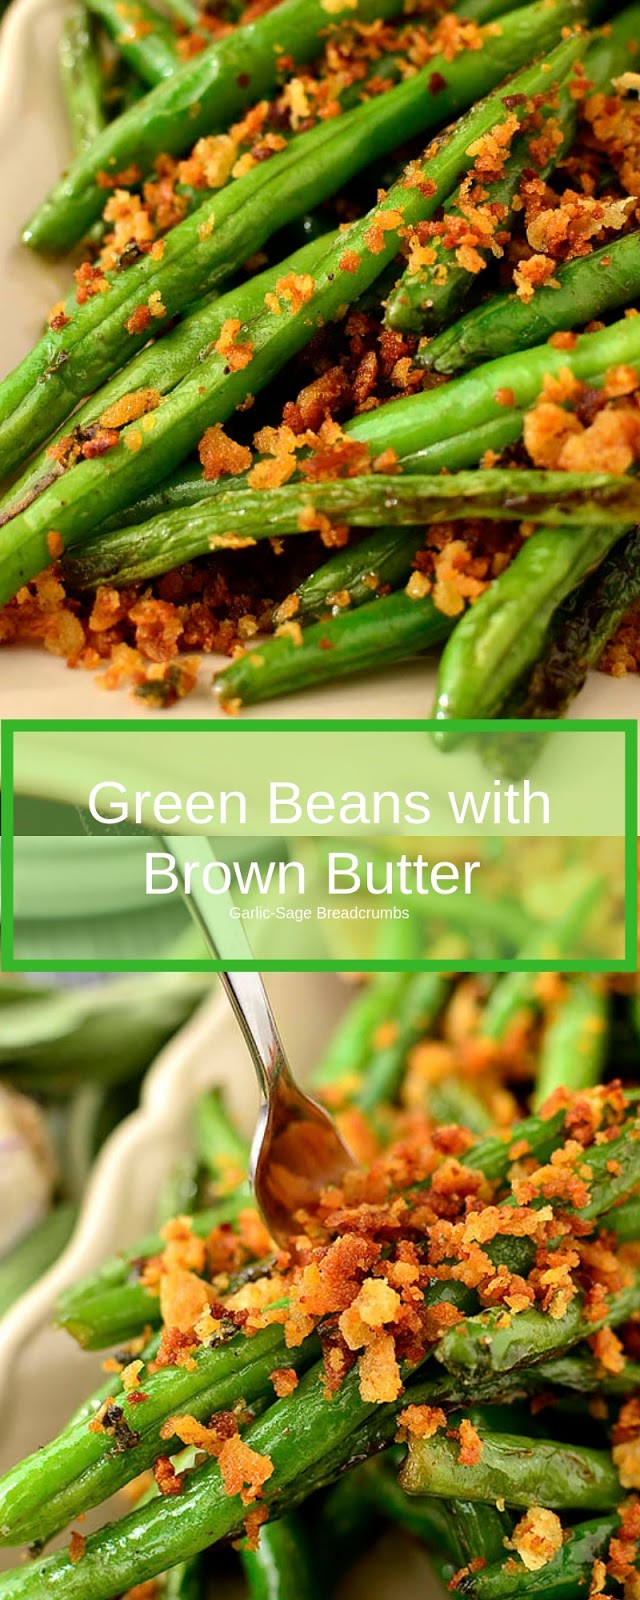 Green Beans with Brown Butter Garlic-Sage Breadcrumbs